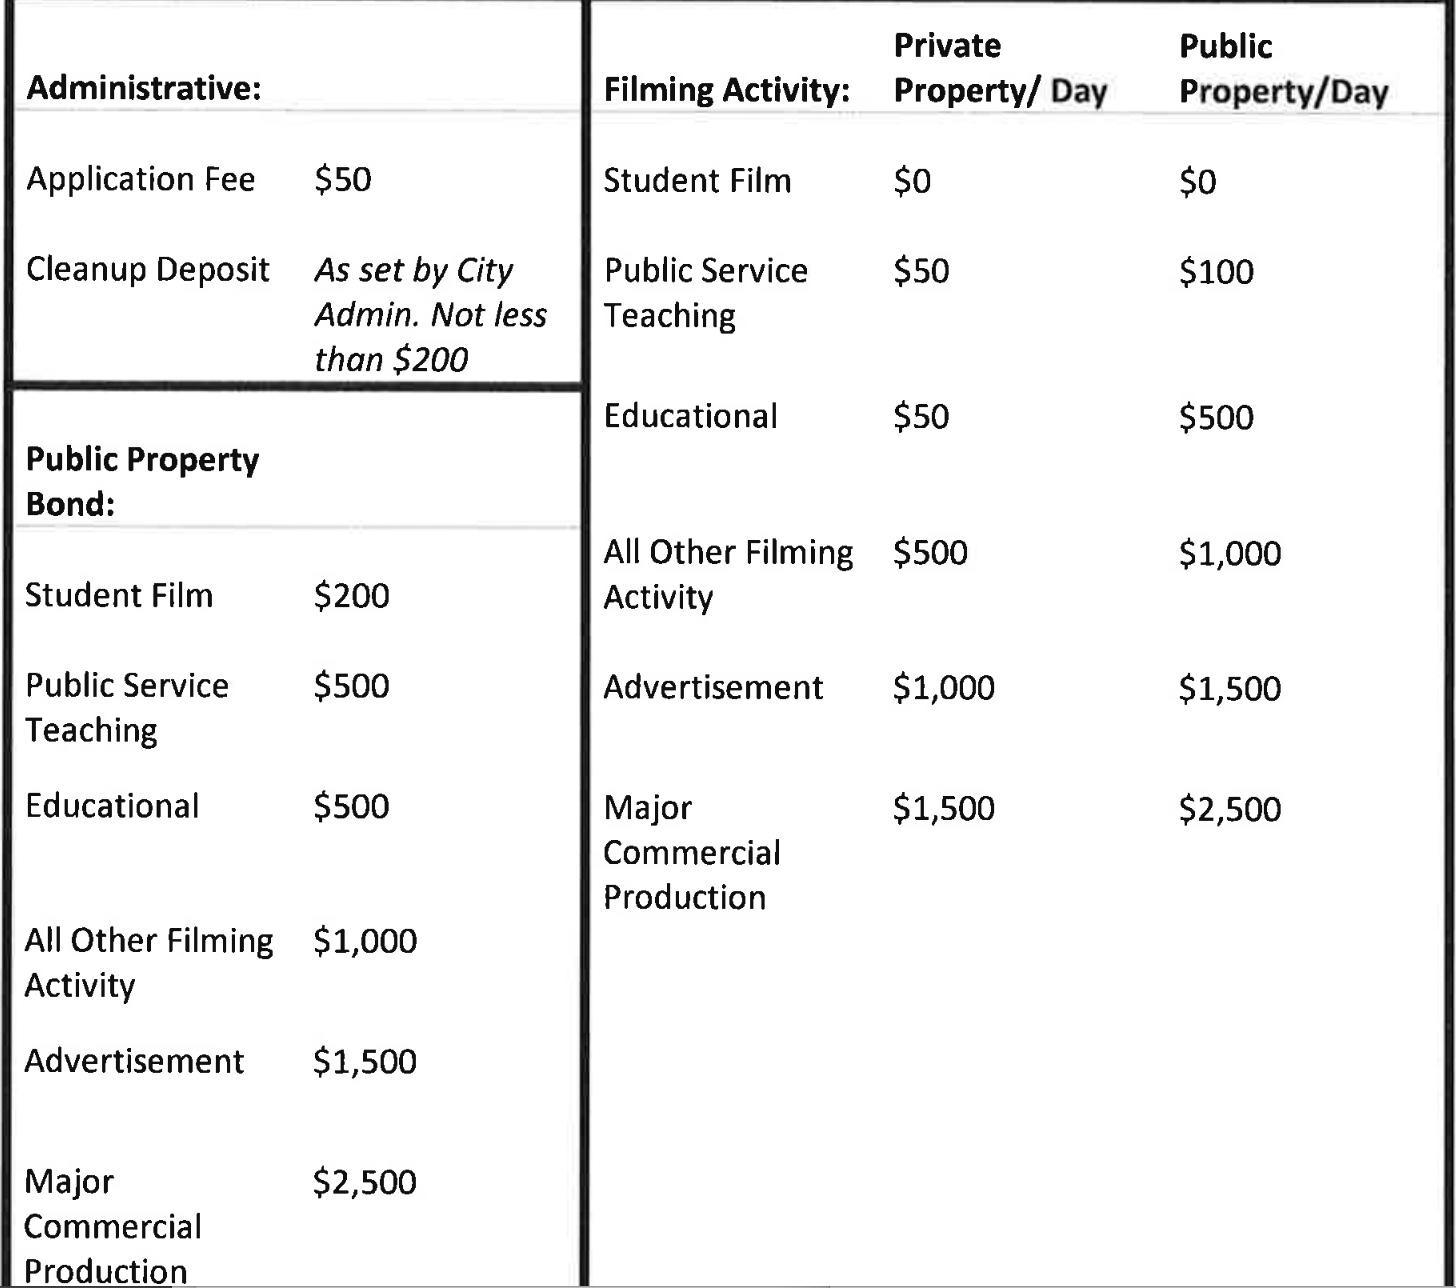 Photo Credit: Screenshot of the PDF of film permit fees from the City Of Beacon as of June 5, 2019.